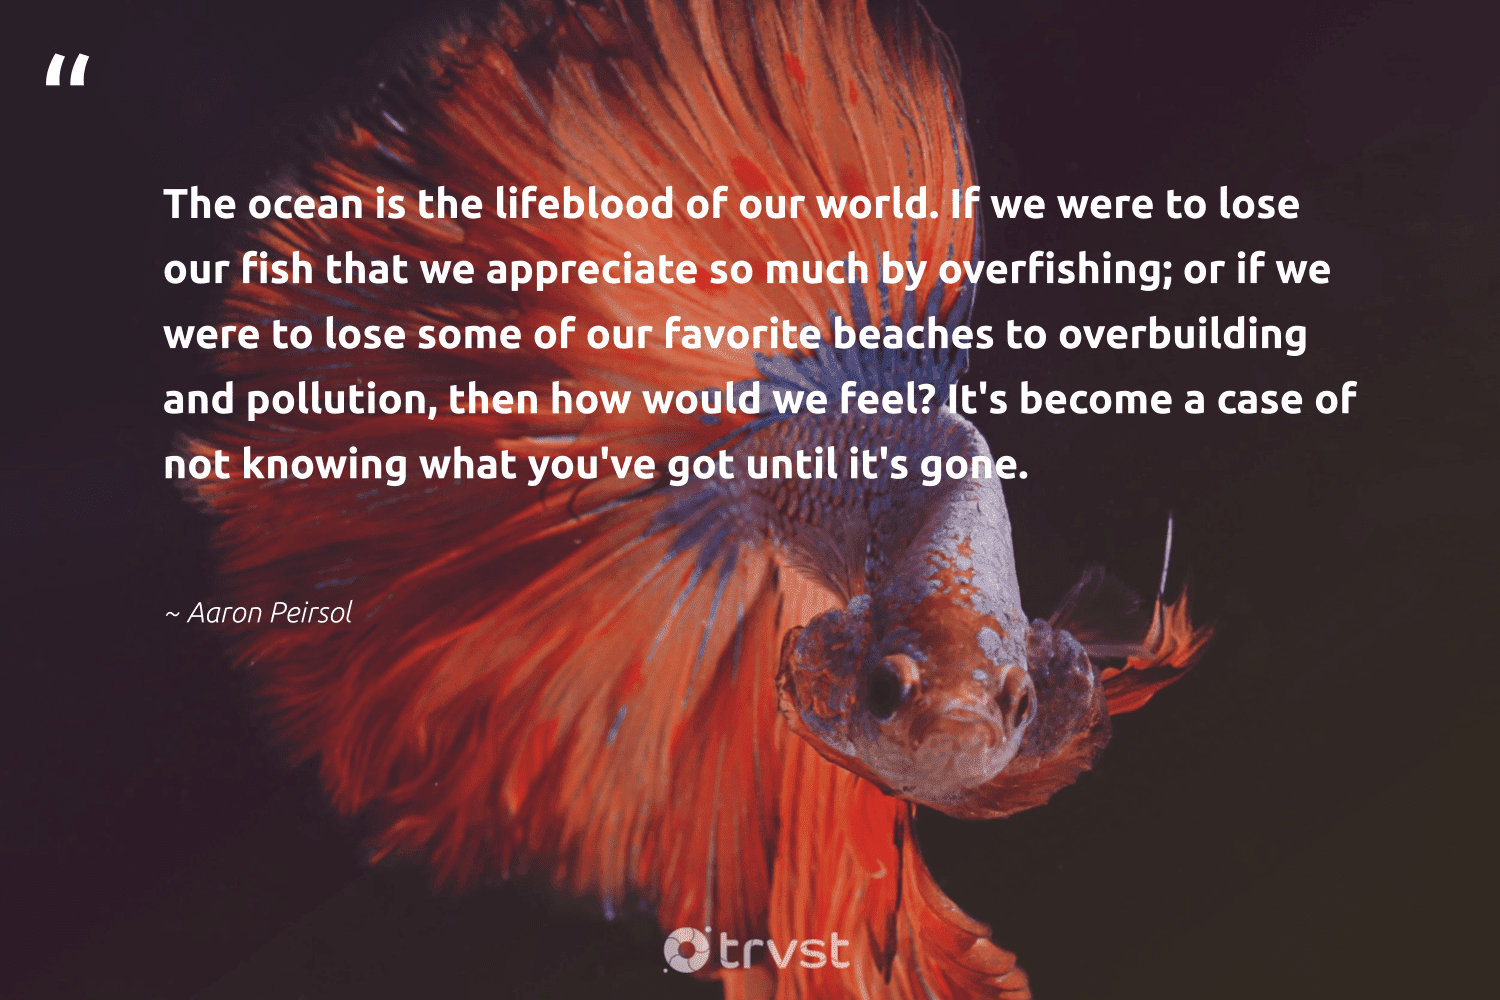 """""""The ocean is the lifeblood of our world. If we were to lose our fish that we appreciate so much by overfishing; or if we were to lose some of our favorite beaches to overbuilding and pollution, then how would we feel? It's become a case of not knowing what you've got until it's gone.""""  - Aaron Peirsol #trvst #quotes #pollution #ocean #fish #pollute #sealife #wildlifeplanet #bethechange #toxic #wildlifeprotection #natureseekers"""